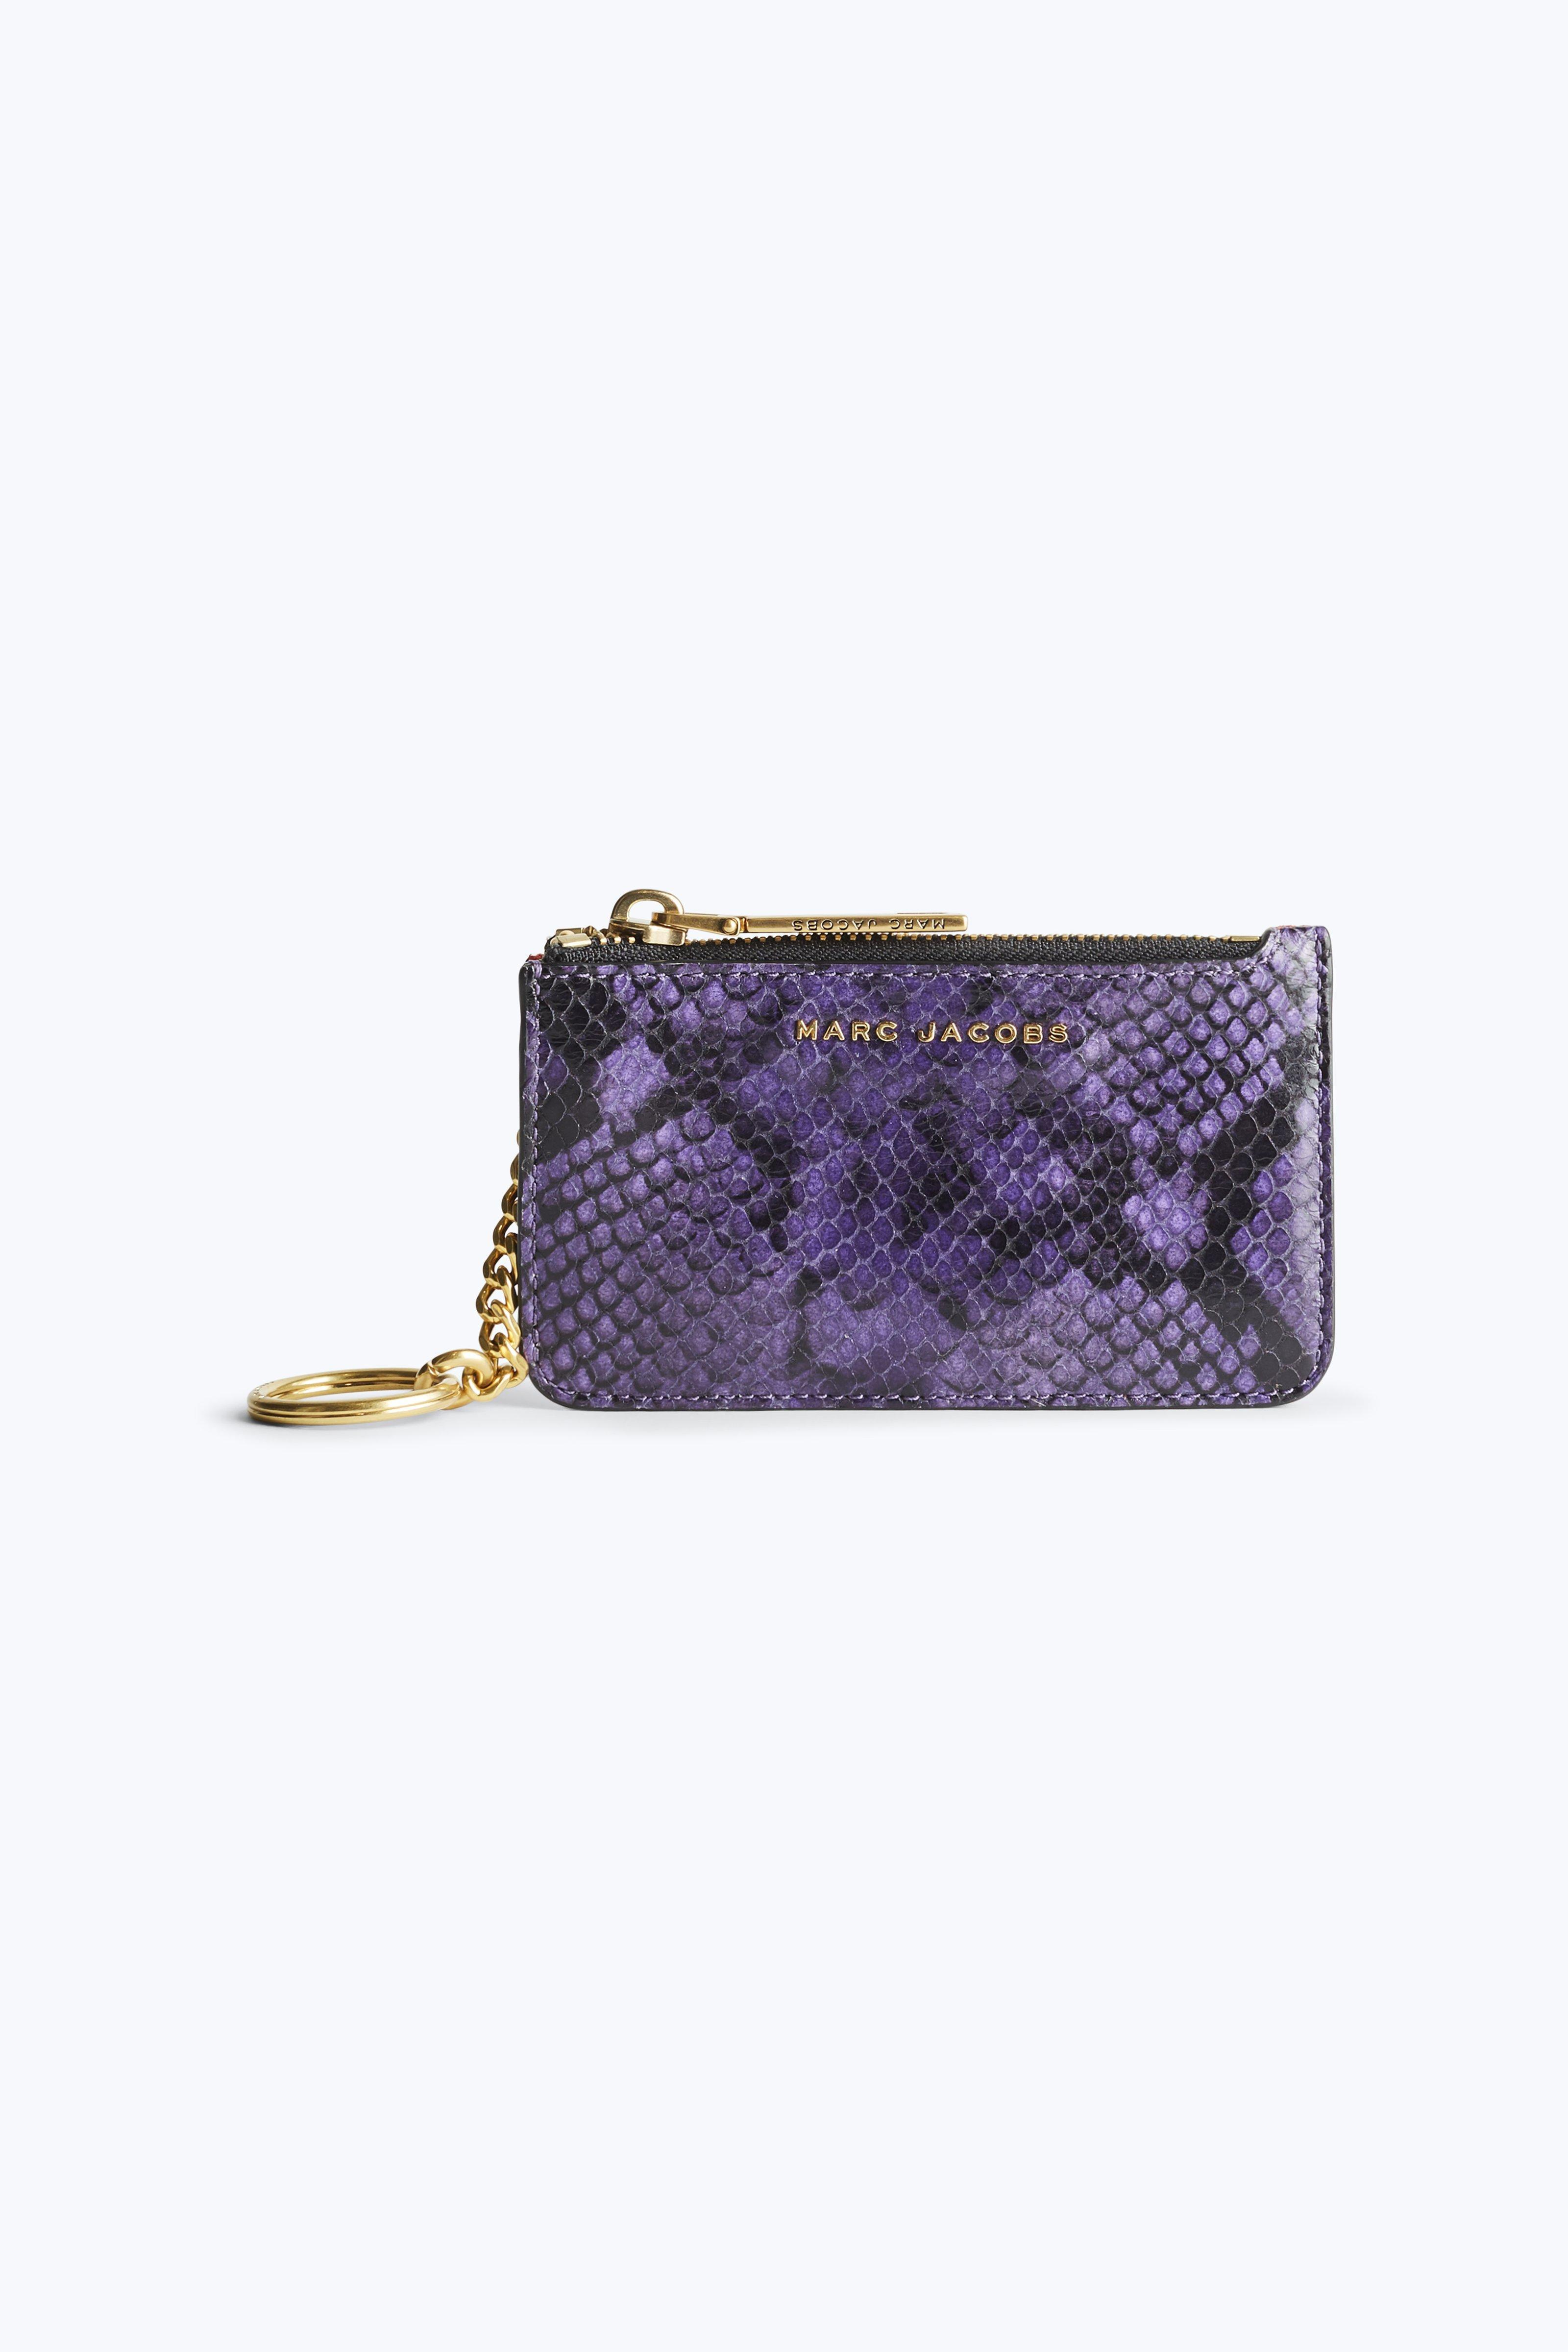 Marc Jacobs Snake Key Pouch In Violet Multi